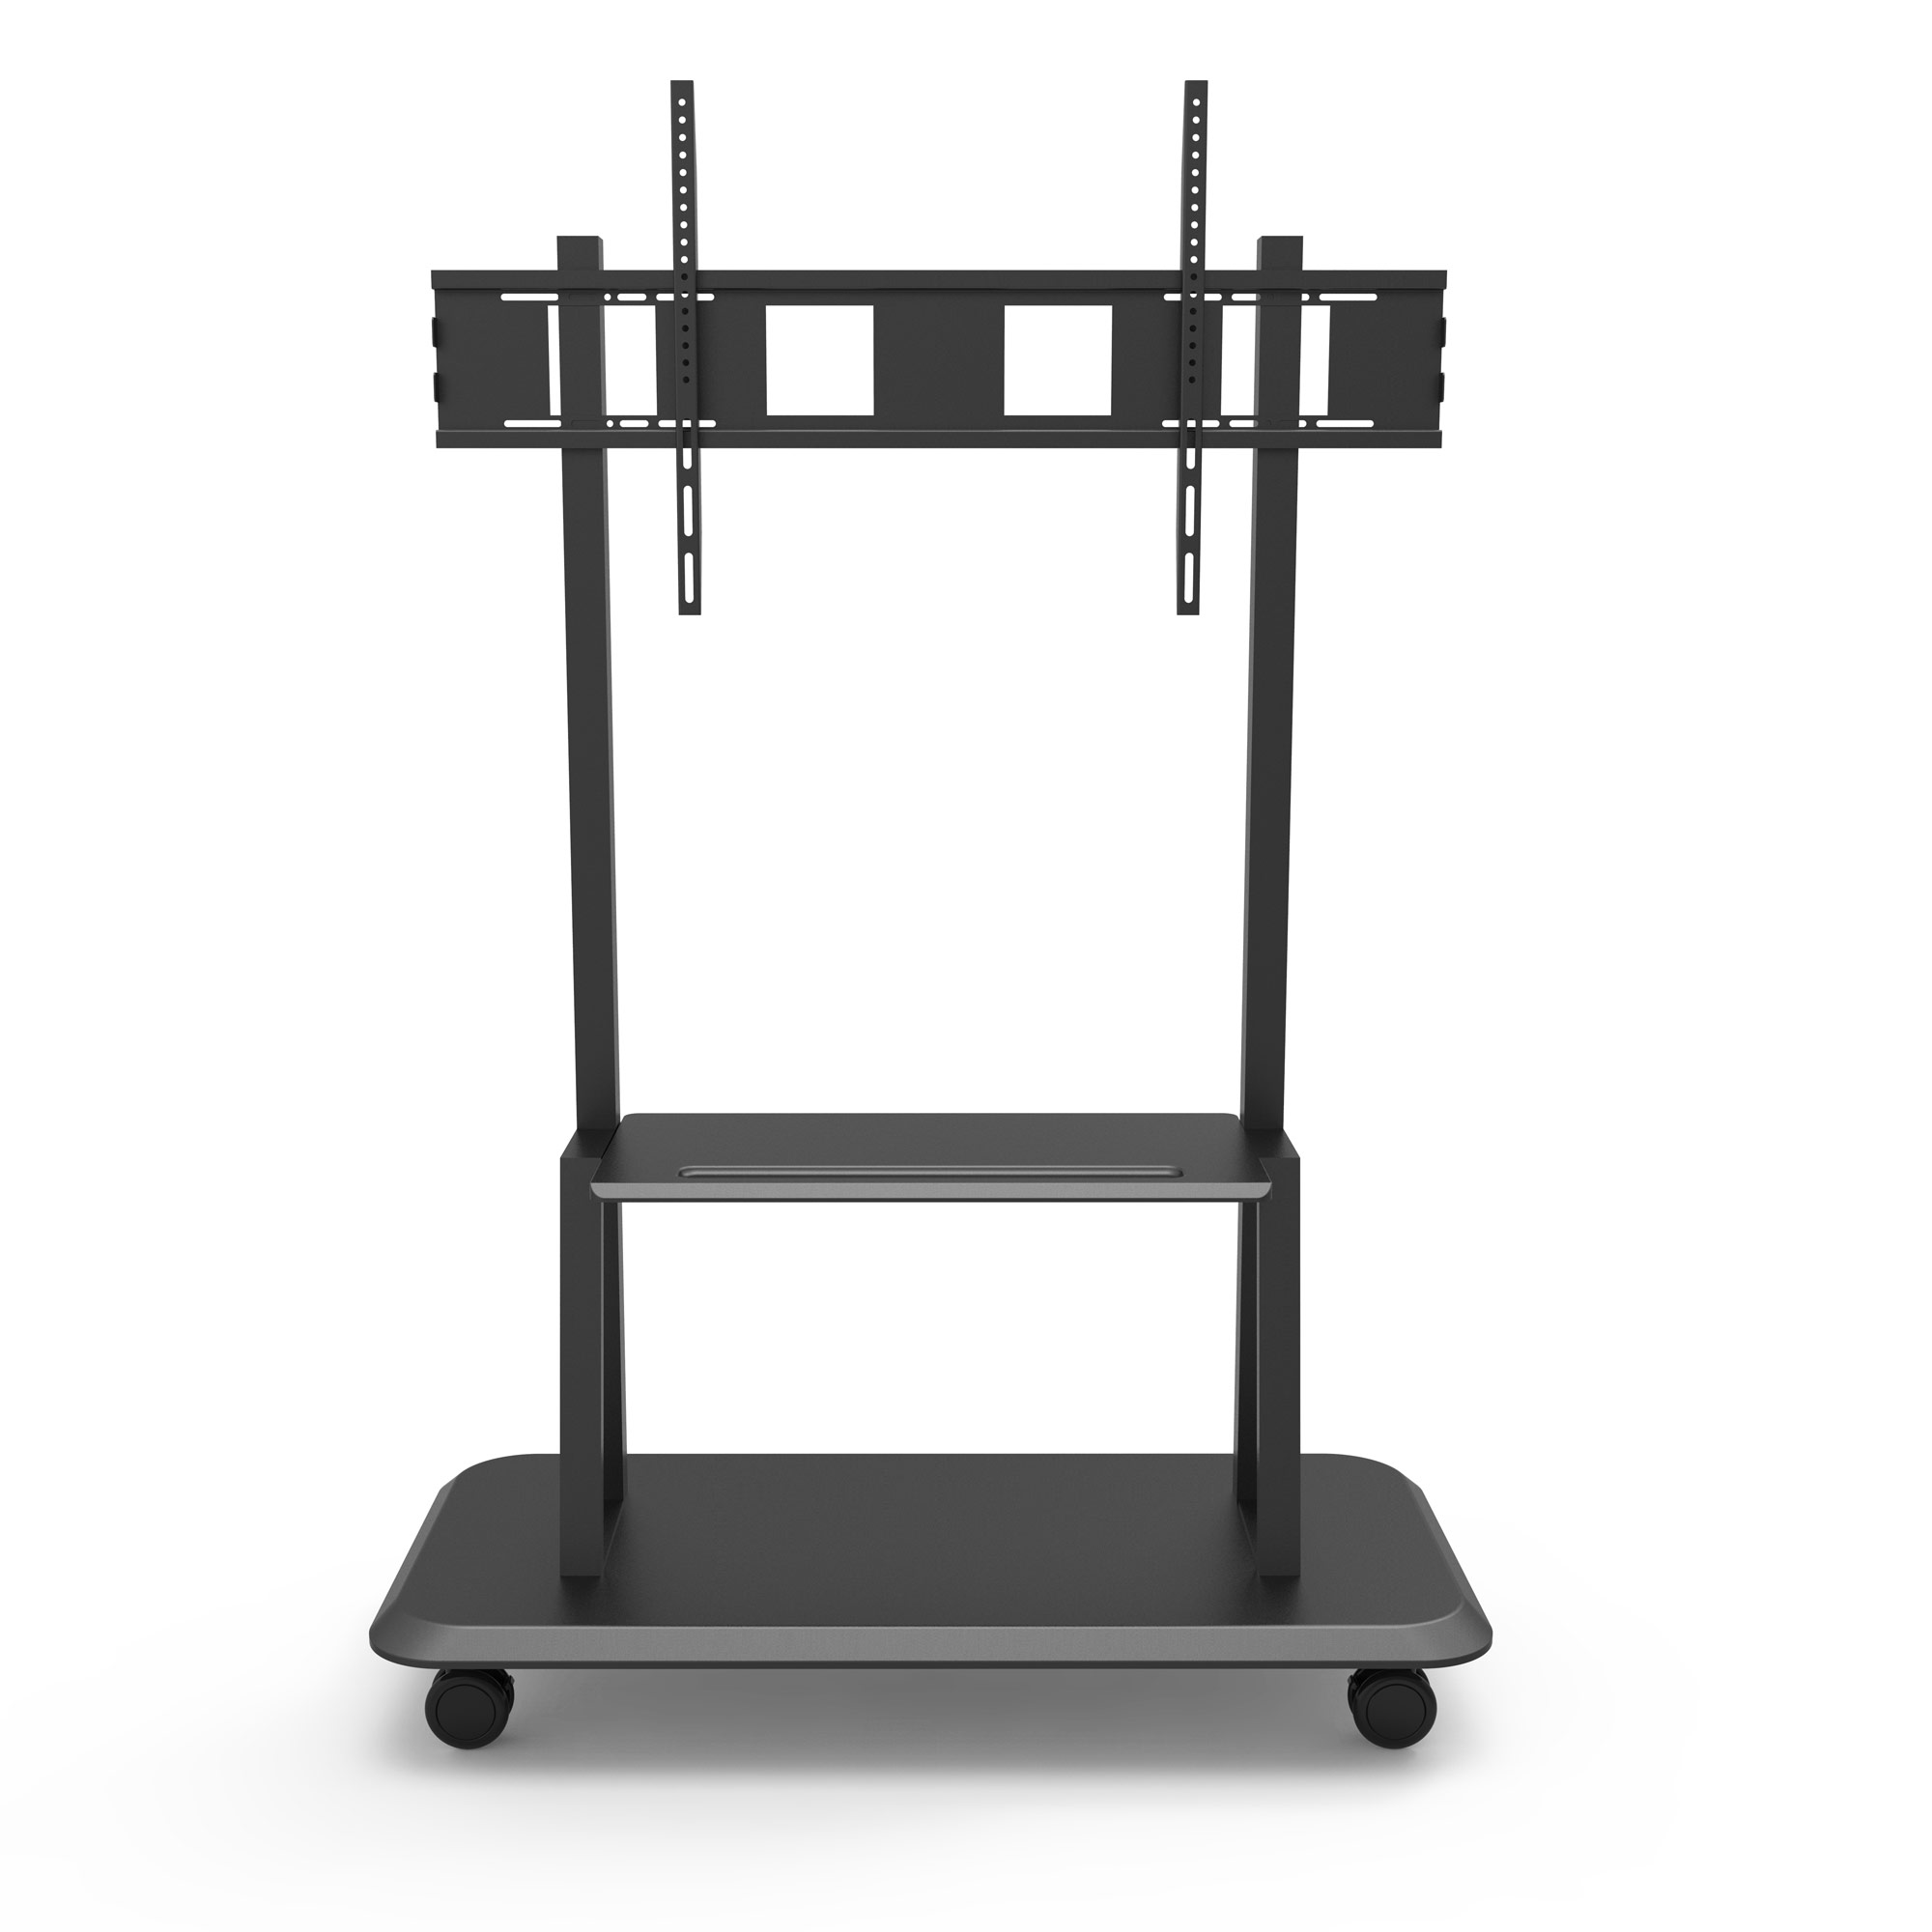 Supporto Tv Con Mensole Free Standing Floor Support With Shelf For Lcd Led Plasma Tv 55 110